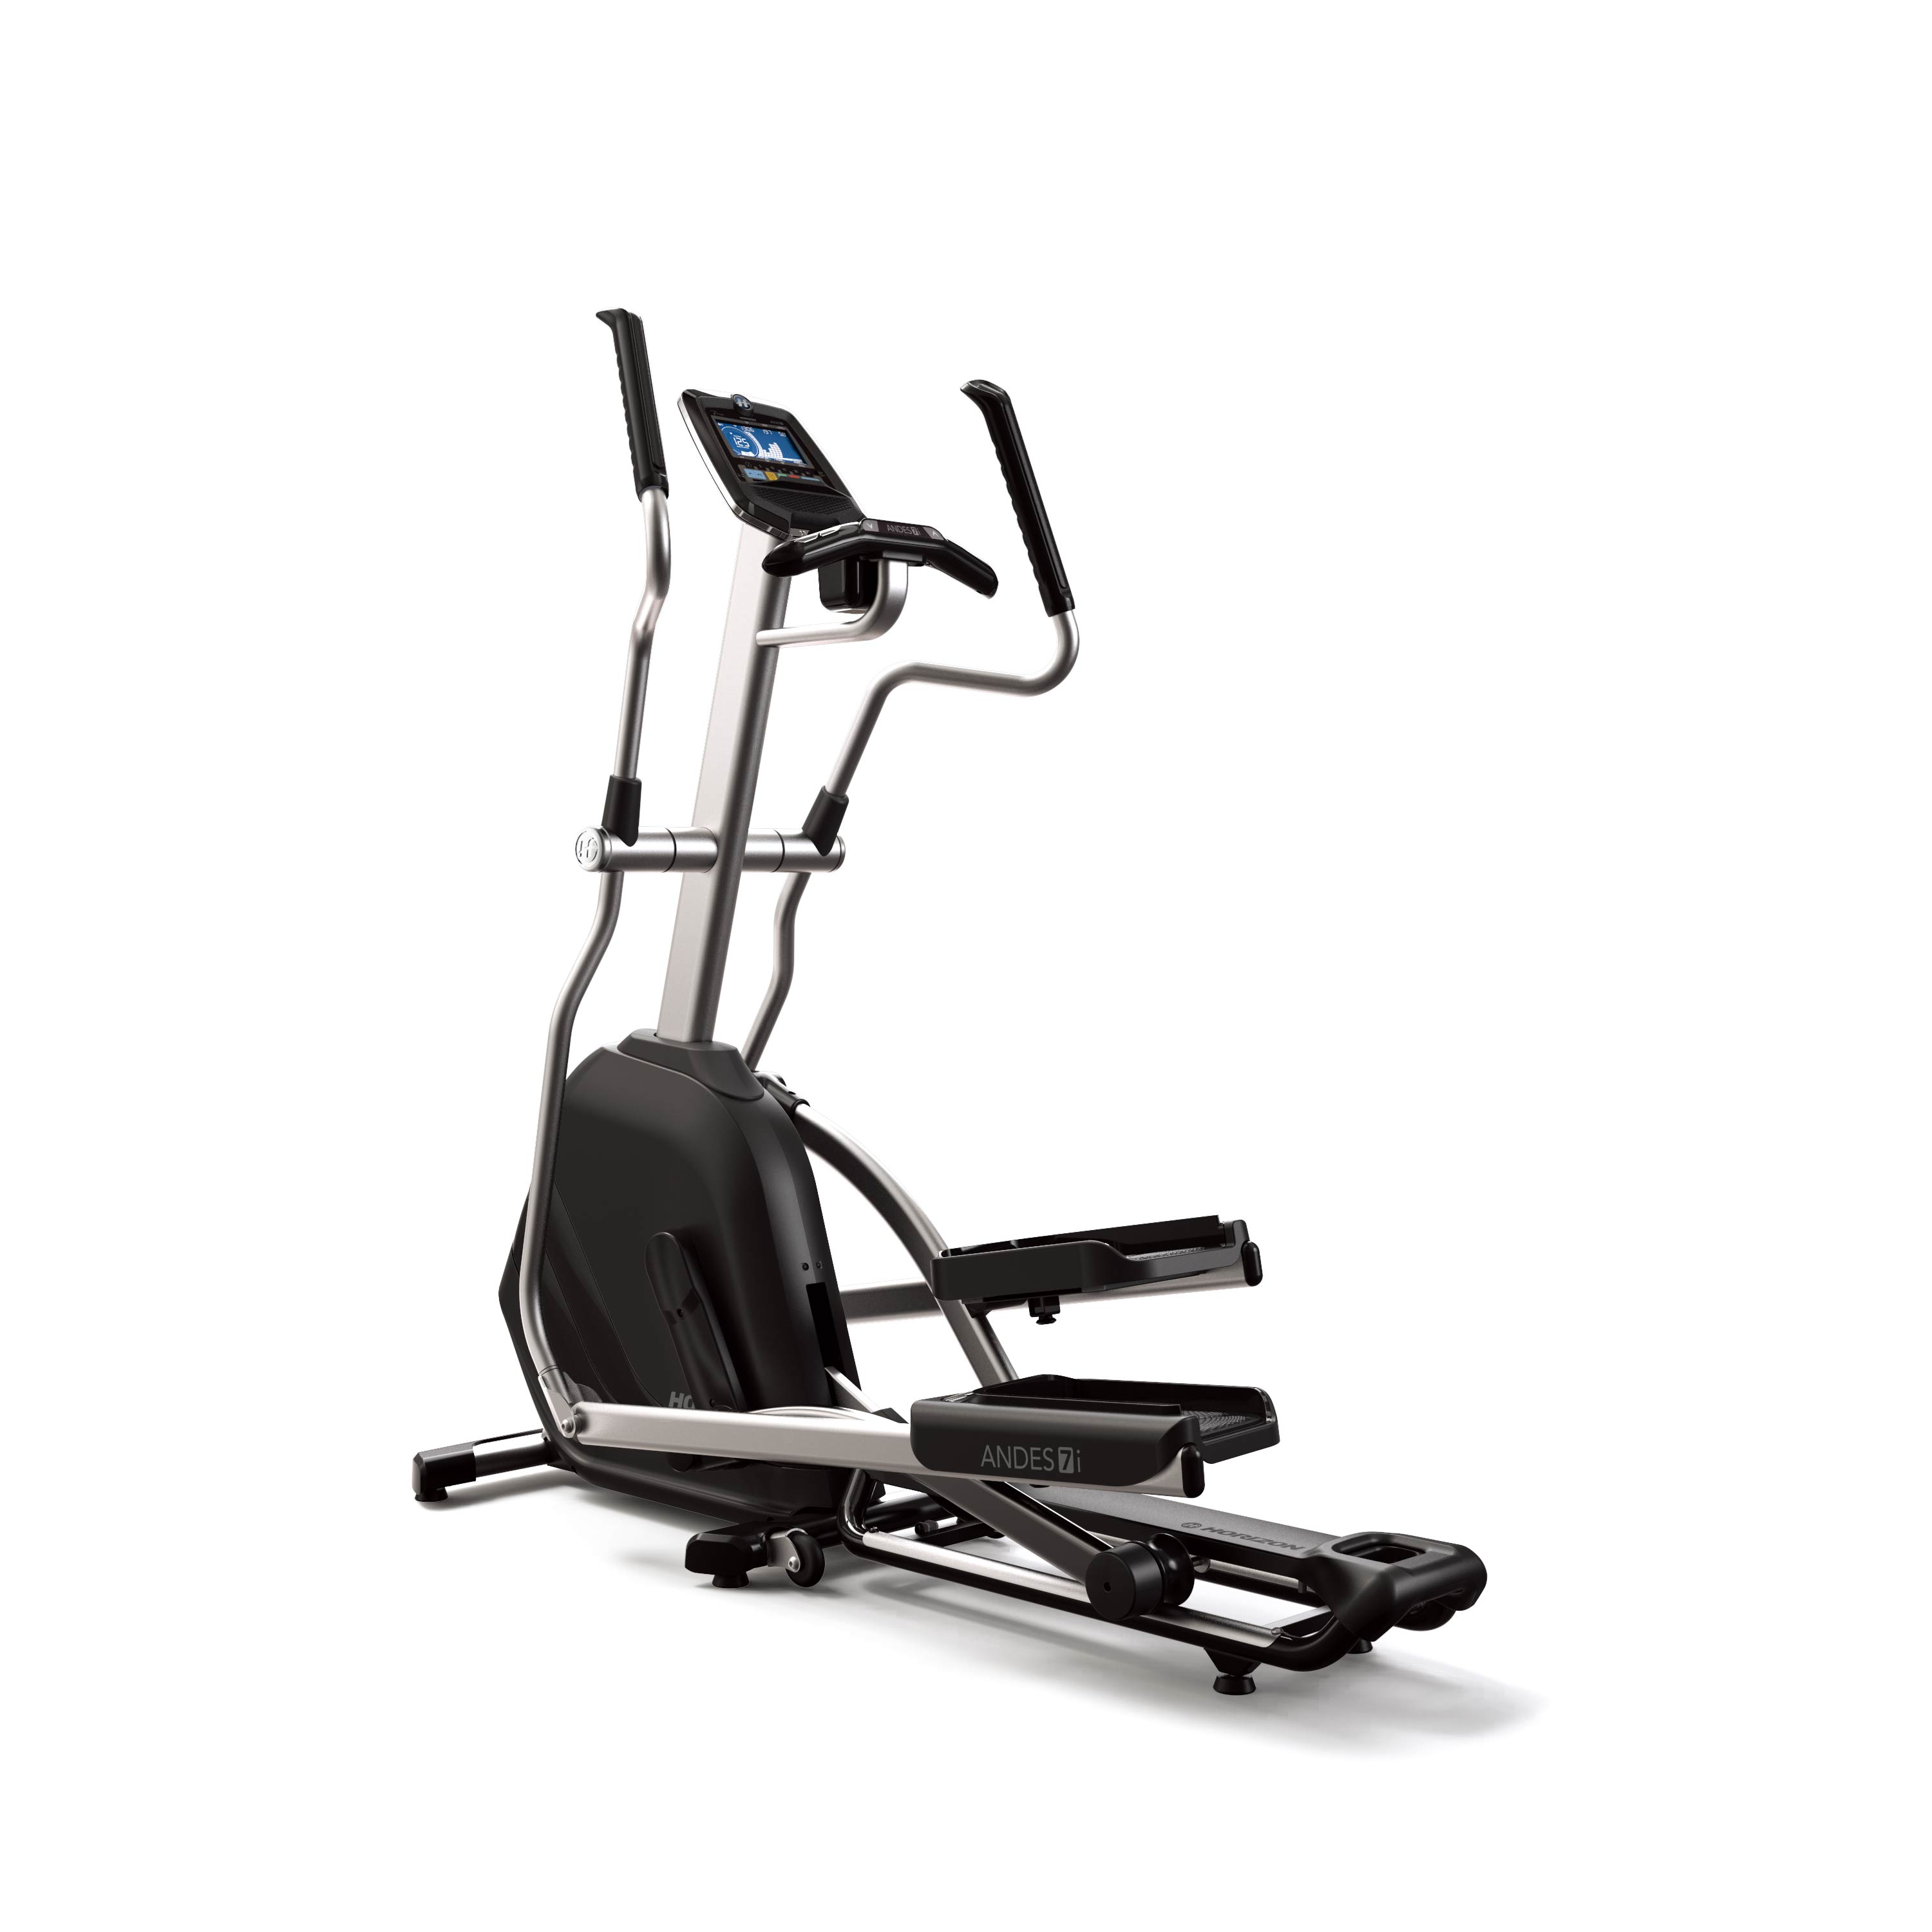 Horizon Andes Elliptical / Johnson Health Tech. Co., Ltd.